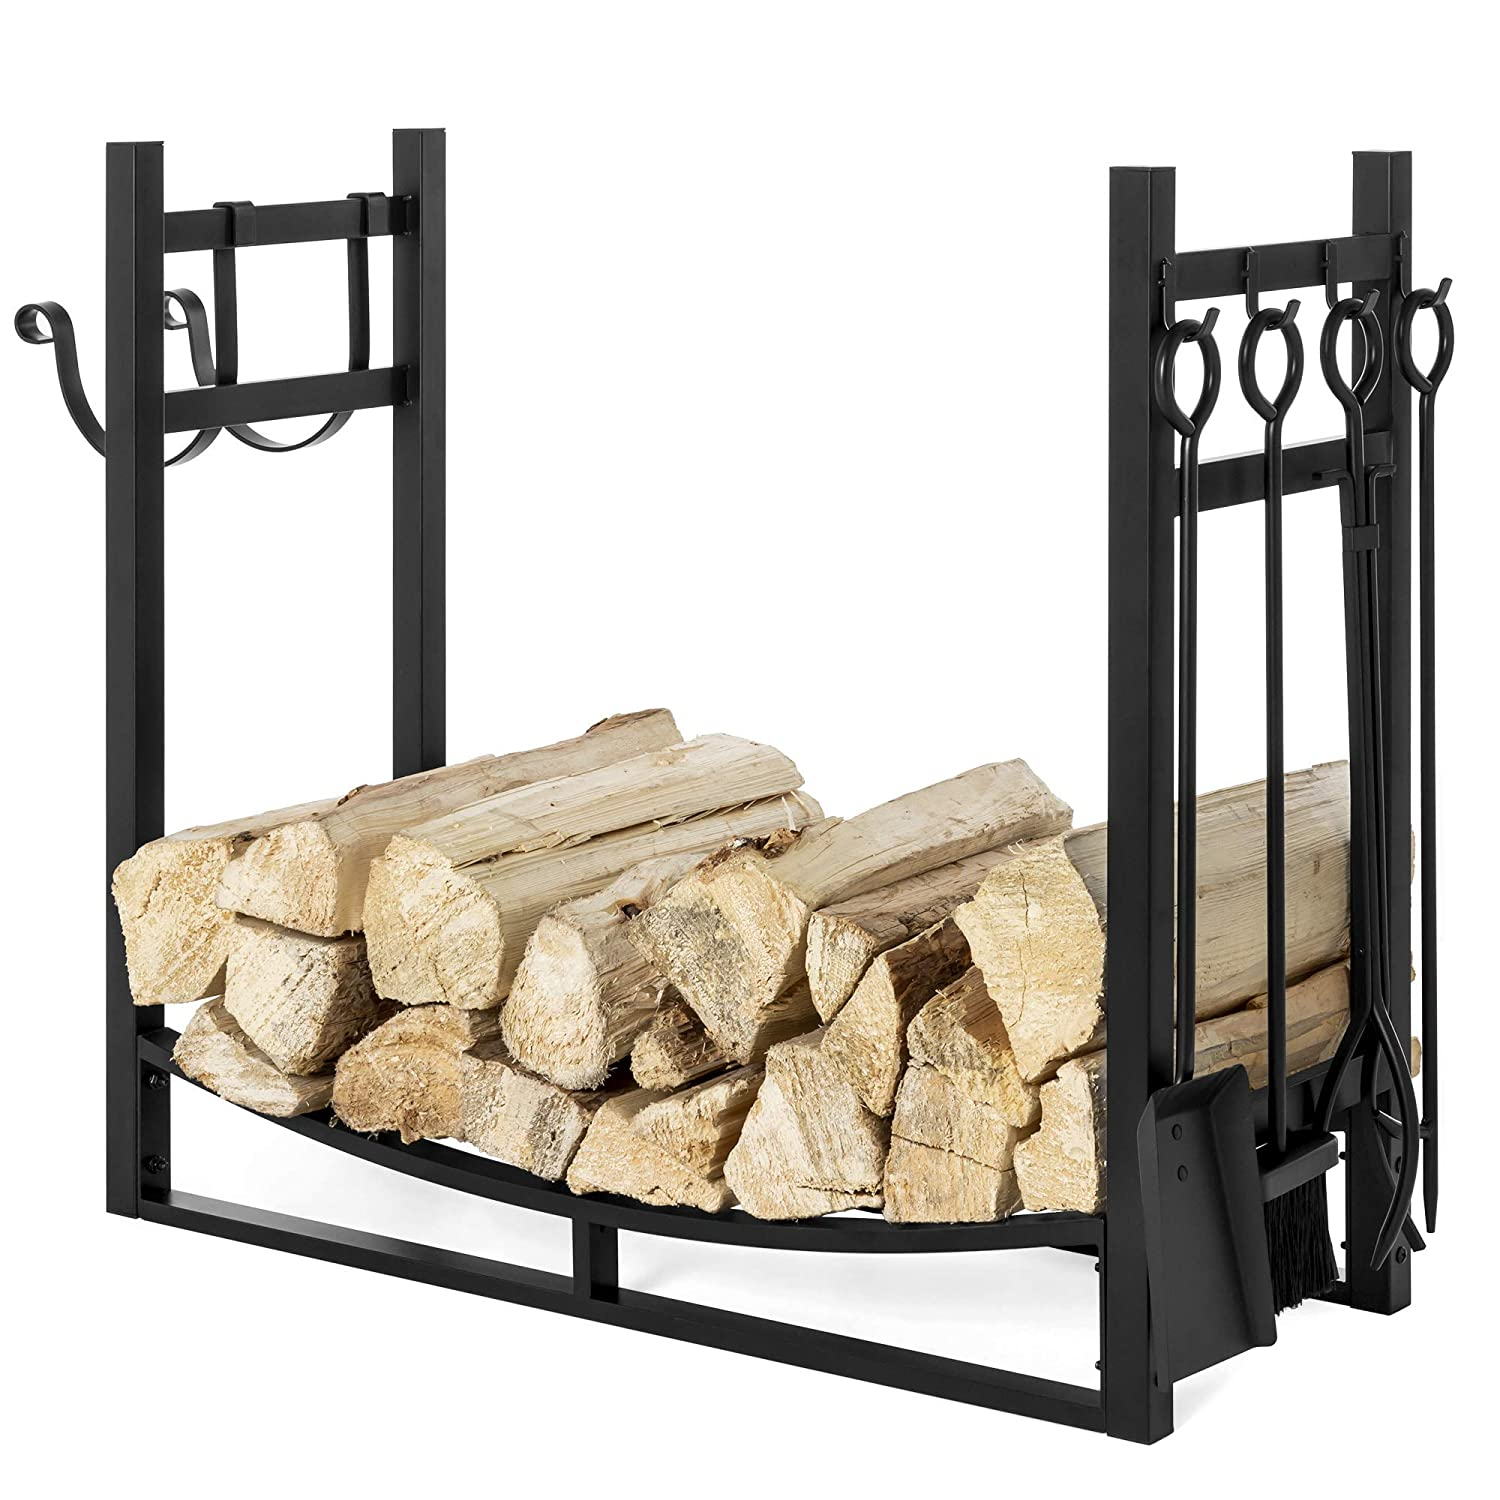 Best Choice Products 43.5in Steel Firewood Log Storage Rack Accessory for Fire Pit, Fireplace w Kindling Holder